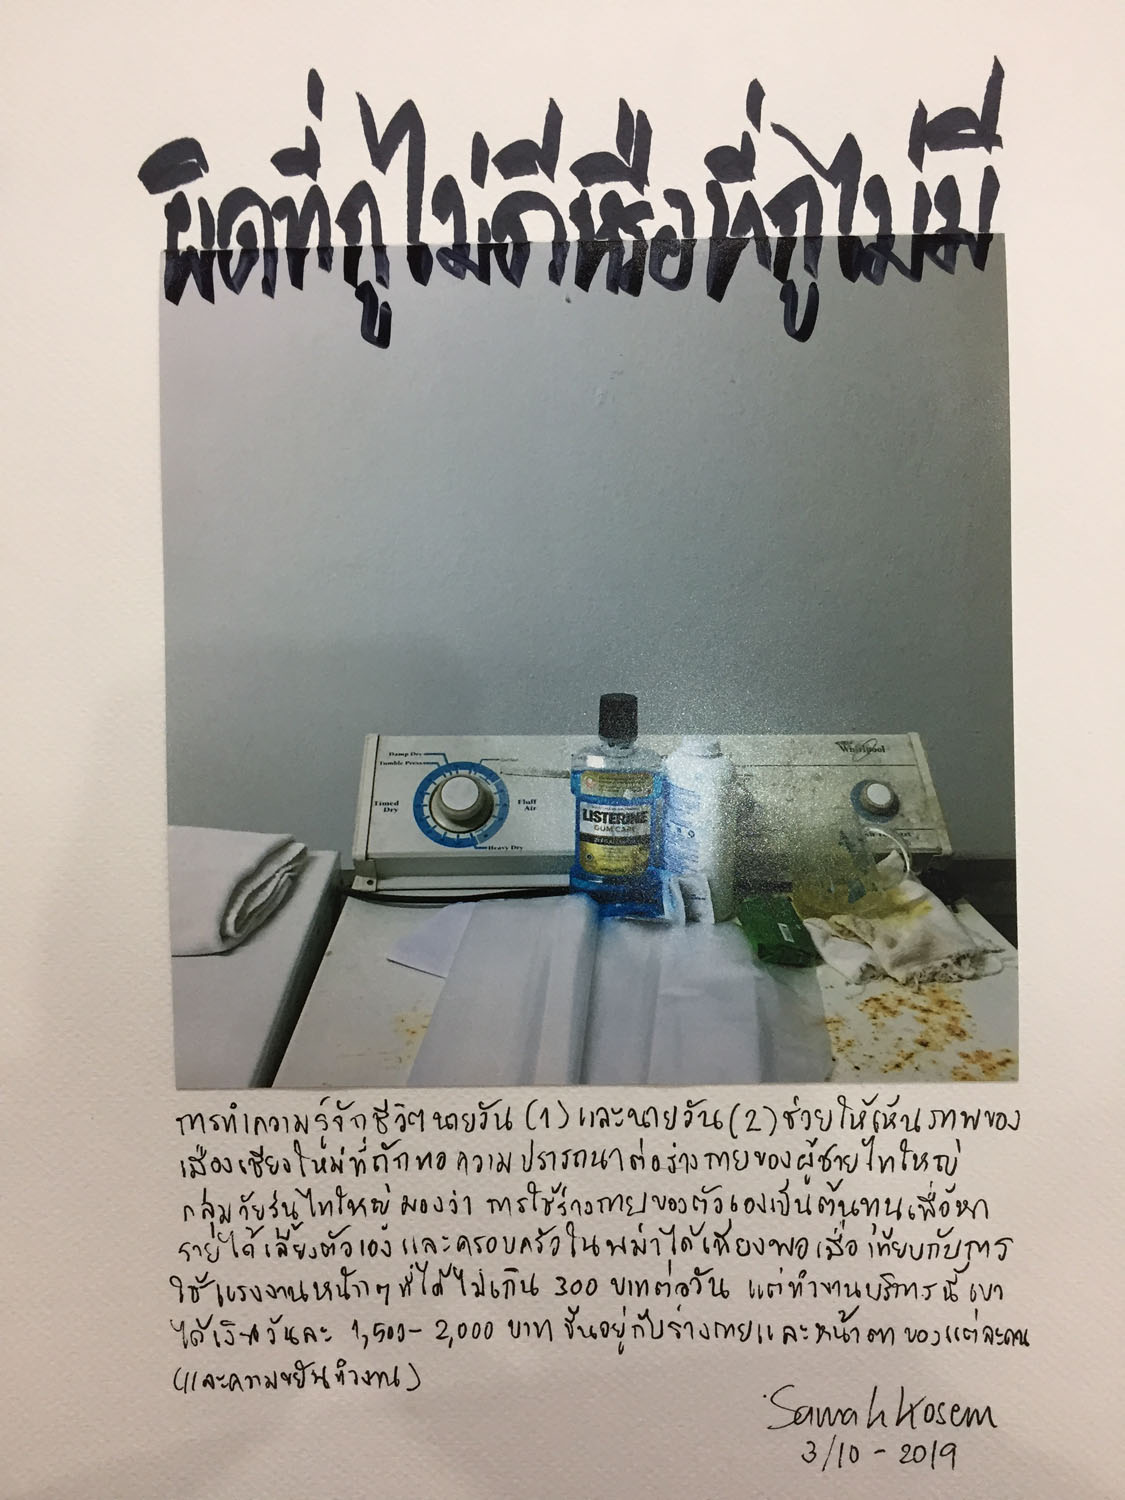 Borders re/make Bodies: Chiang Mai Ethnography - Ethnography of the House No. 3